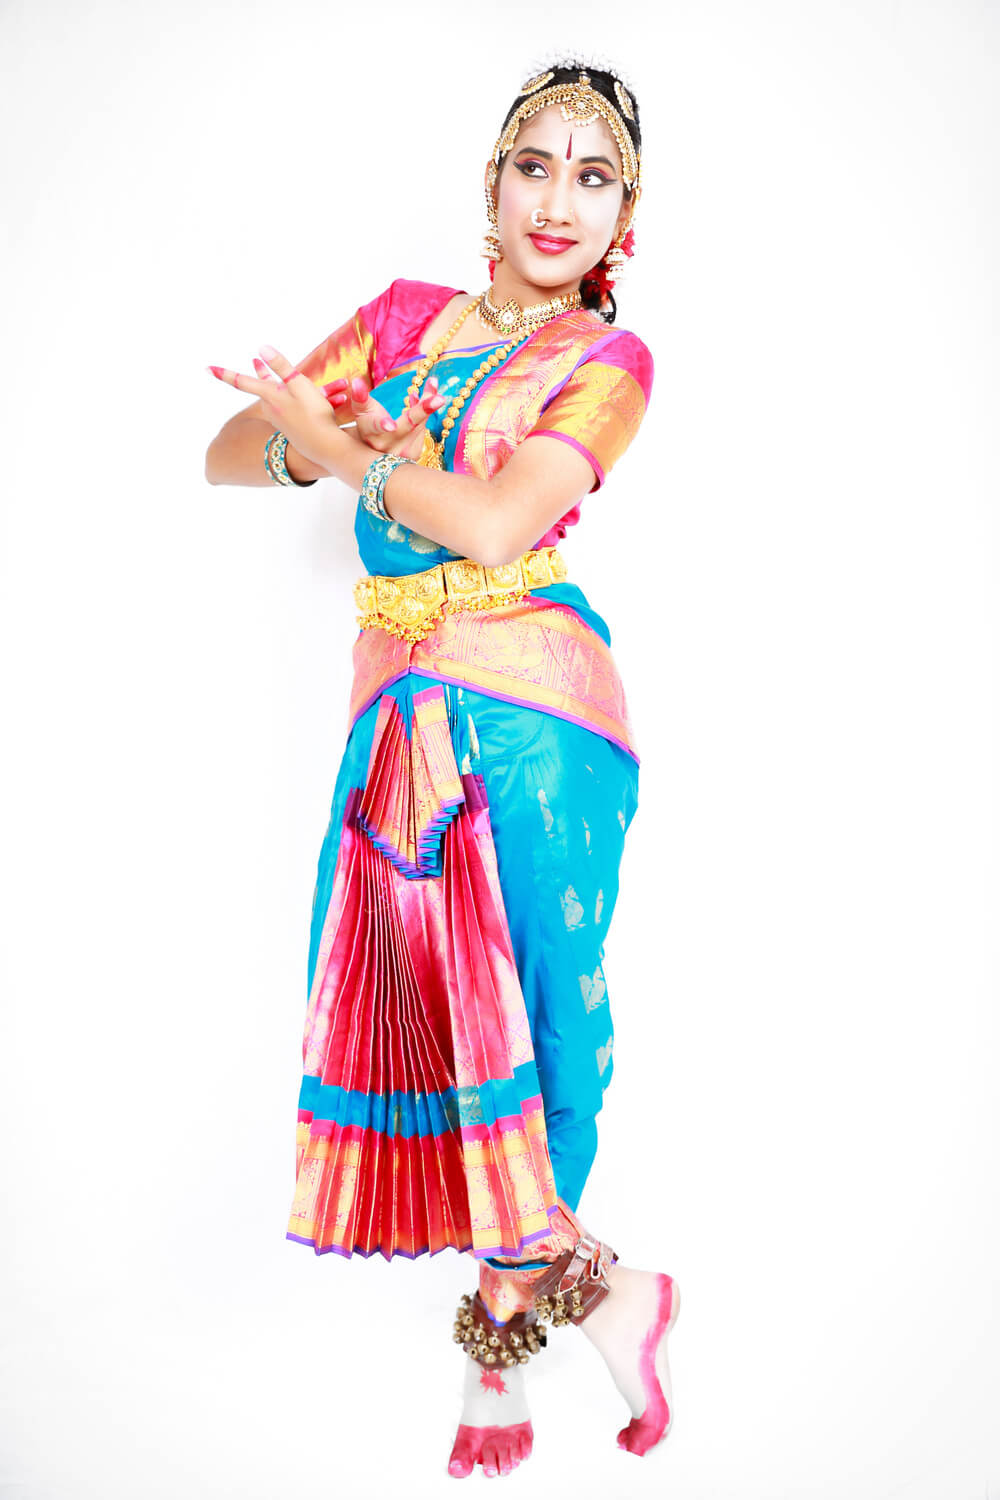 Classical Indian Dance pose.jpg